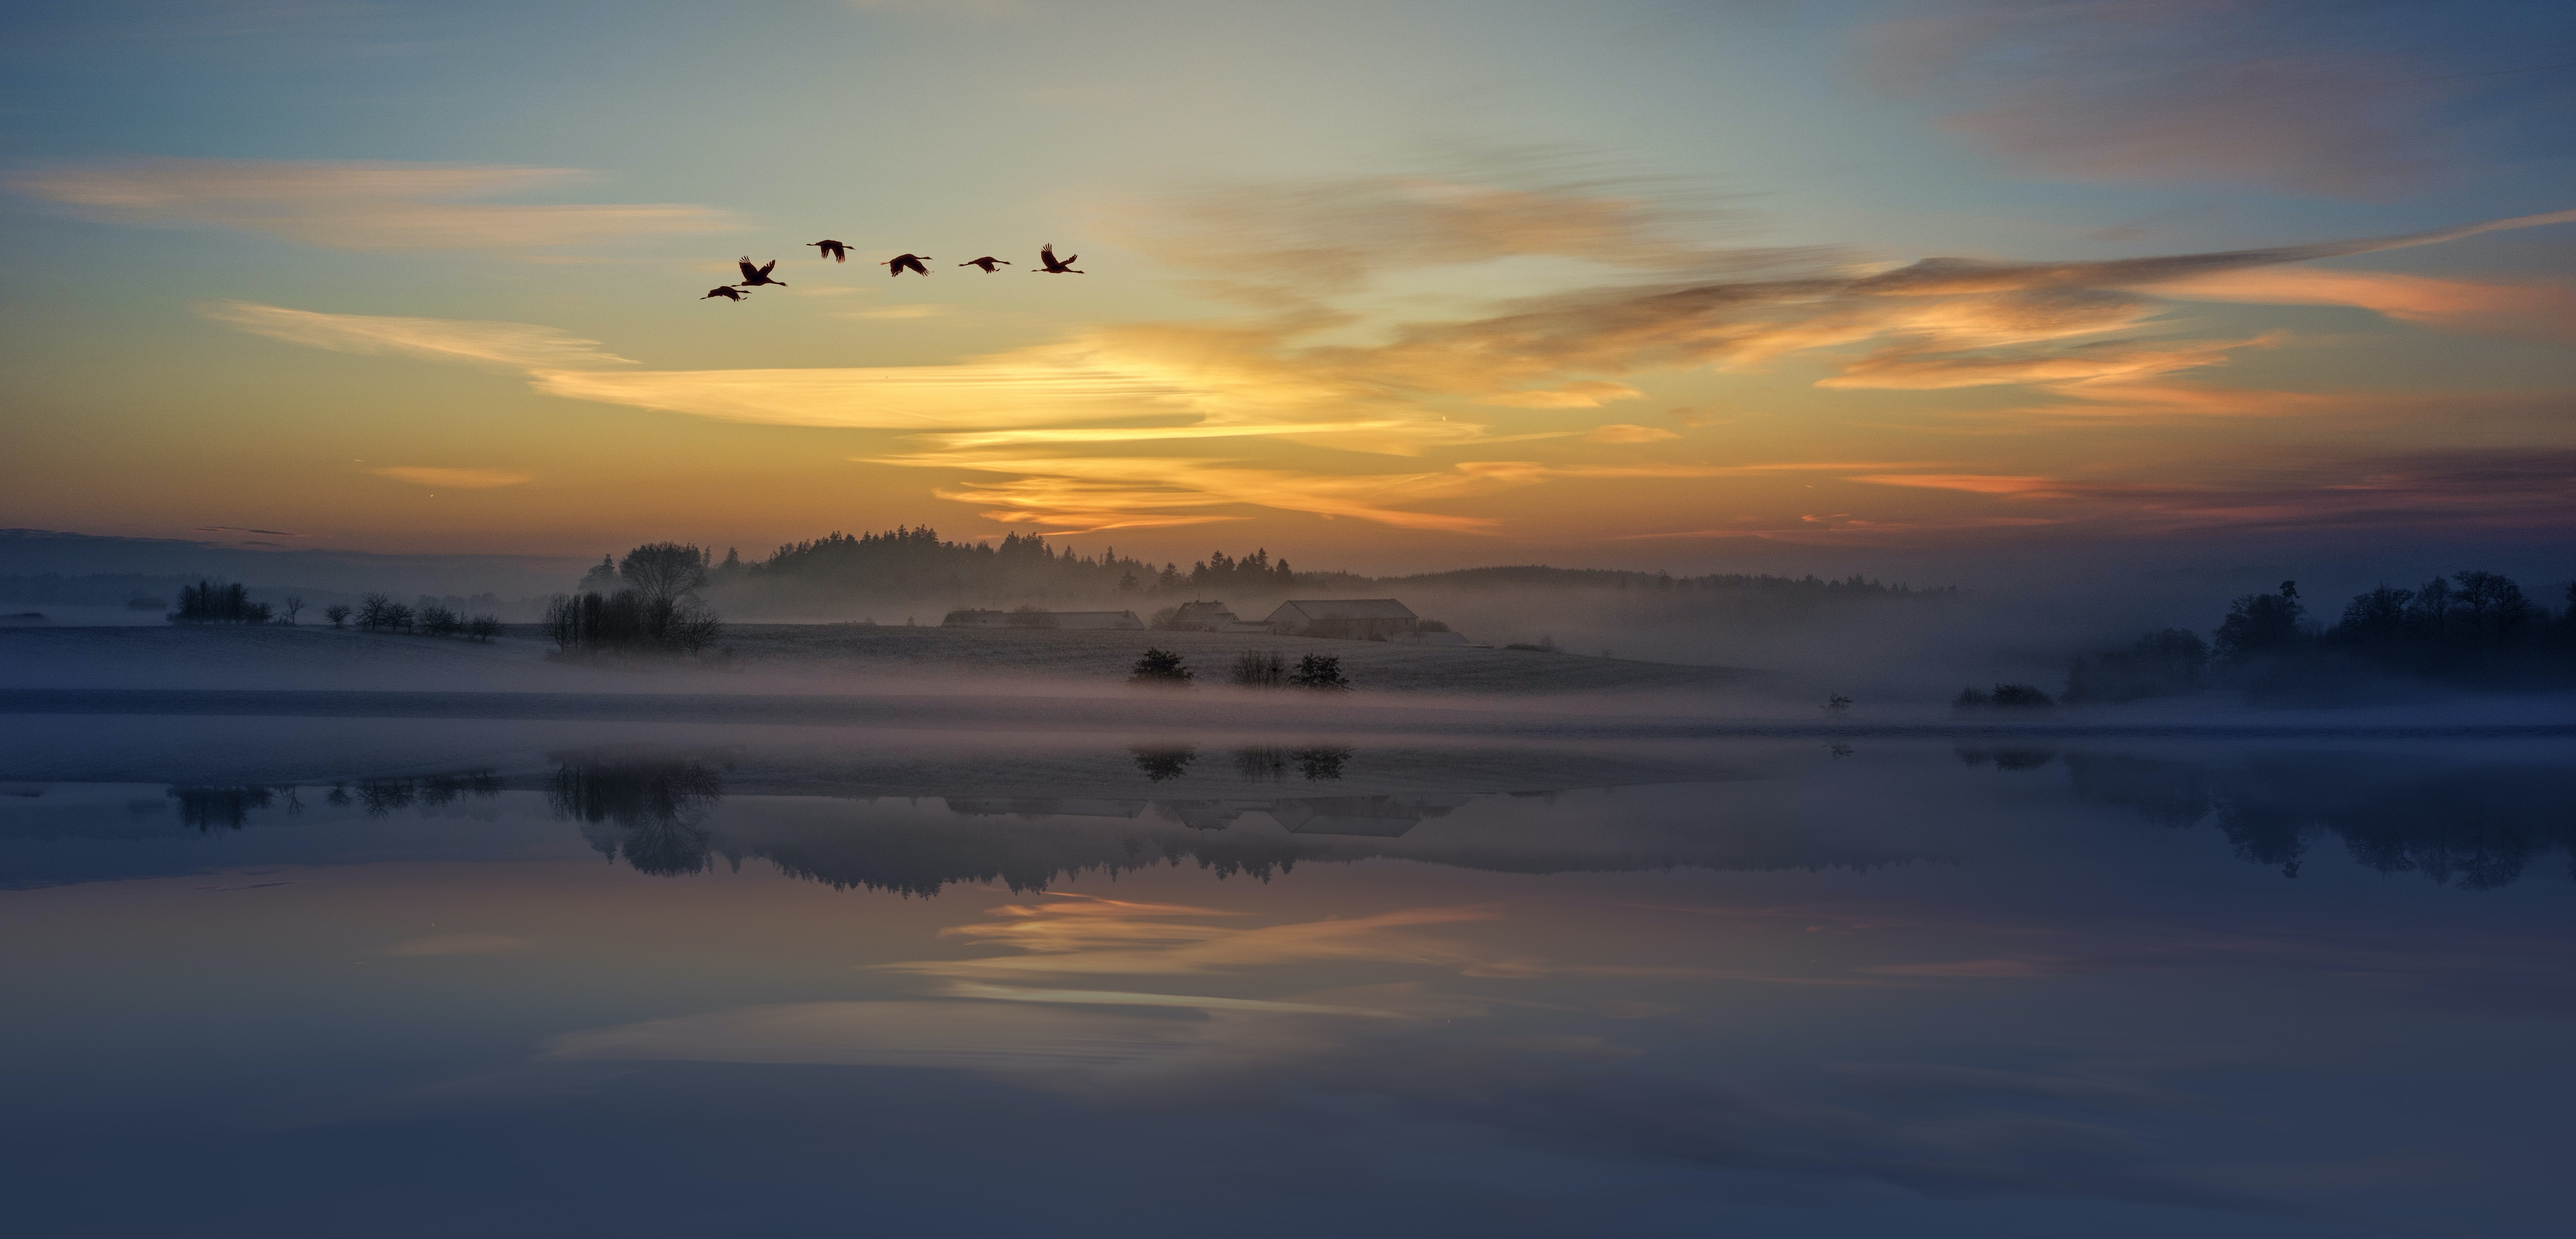 silhouette of birds flying above body of water